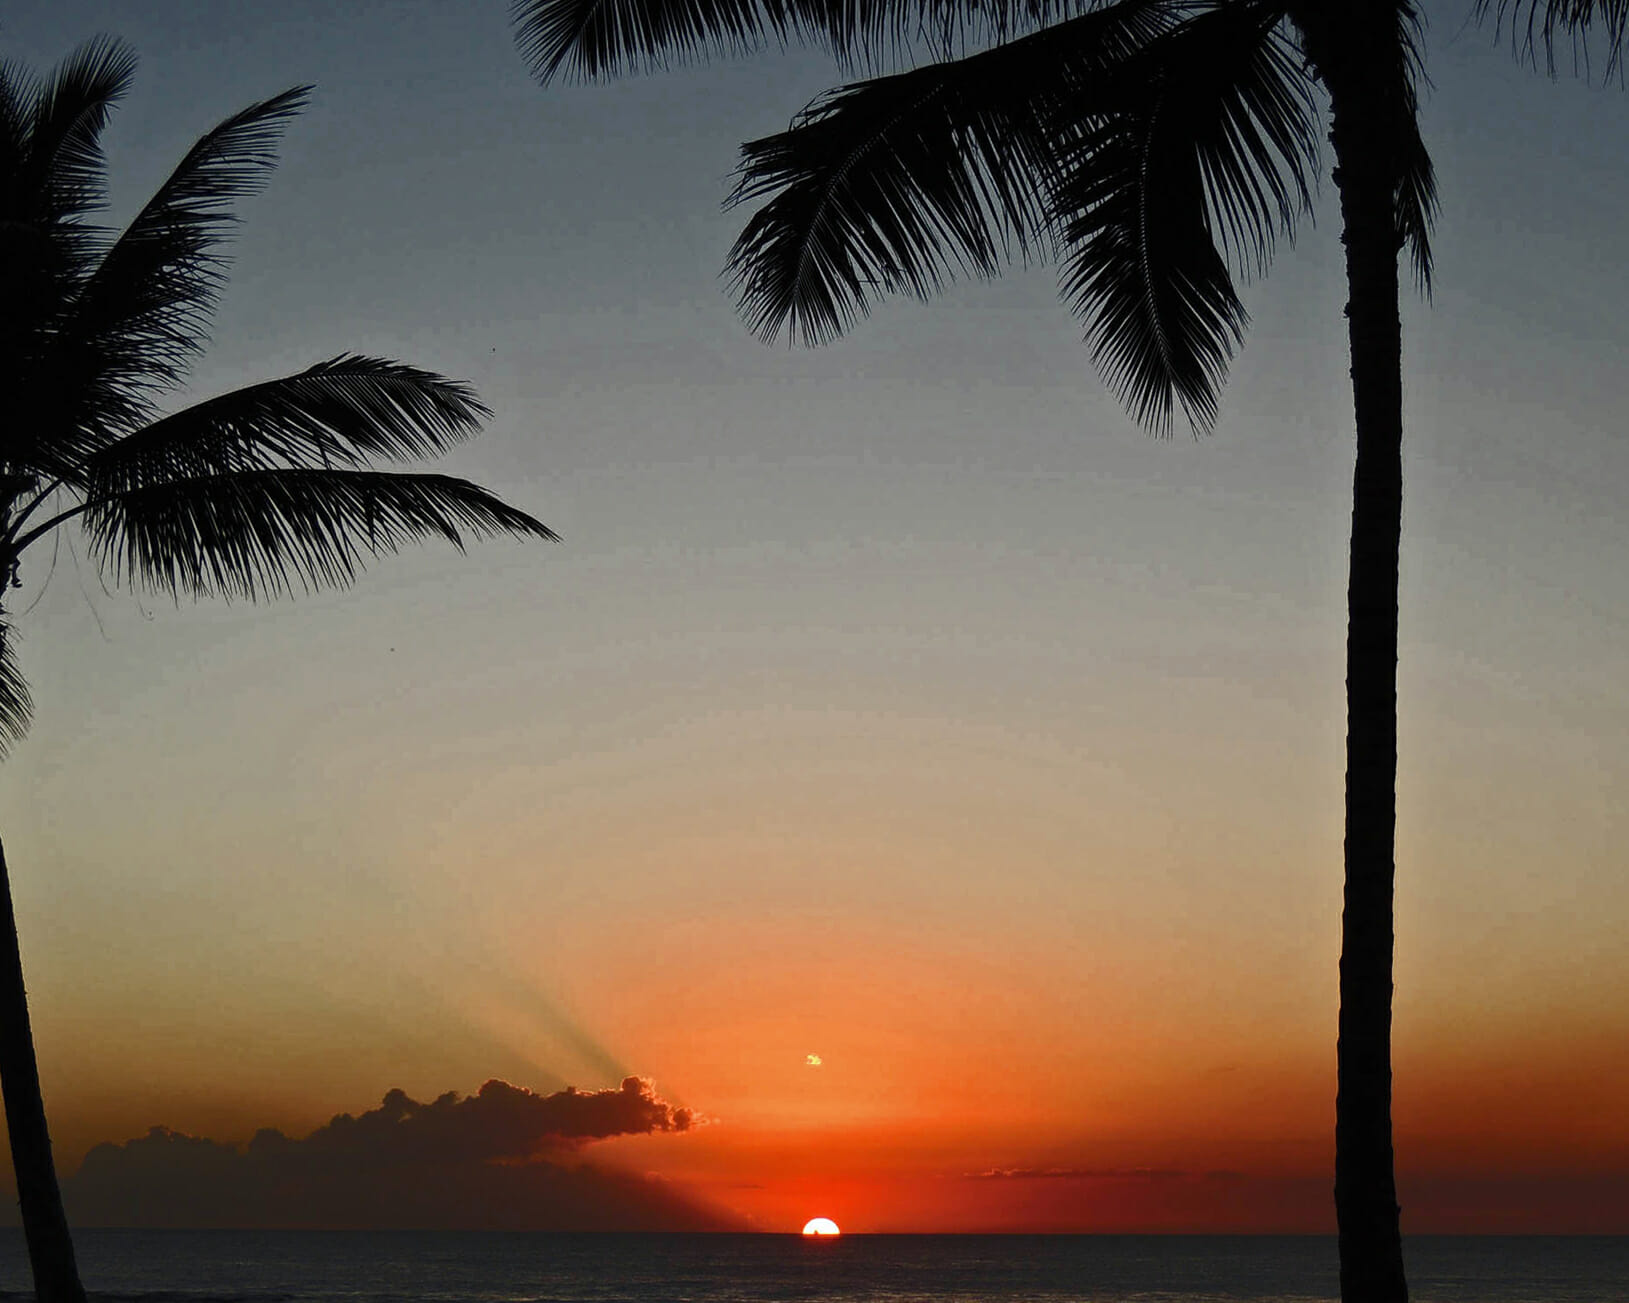 Hawaii sunset filled with beautiful colors